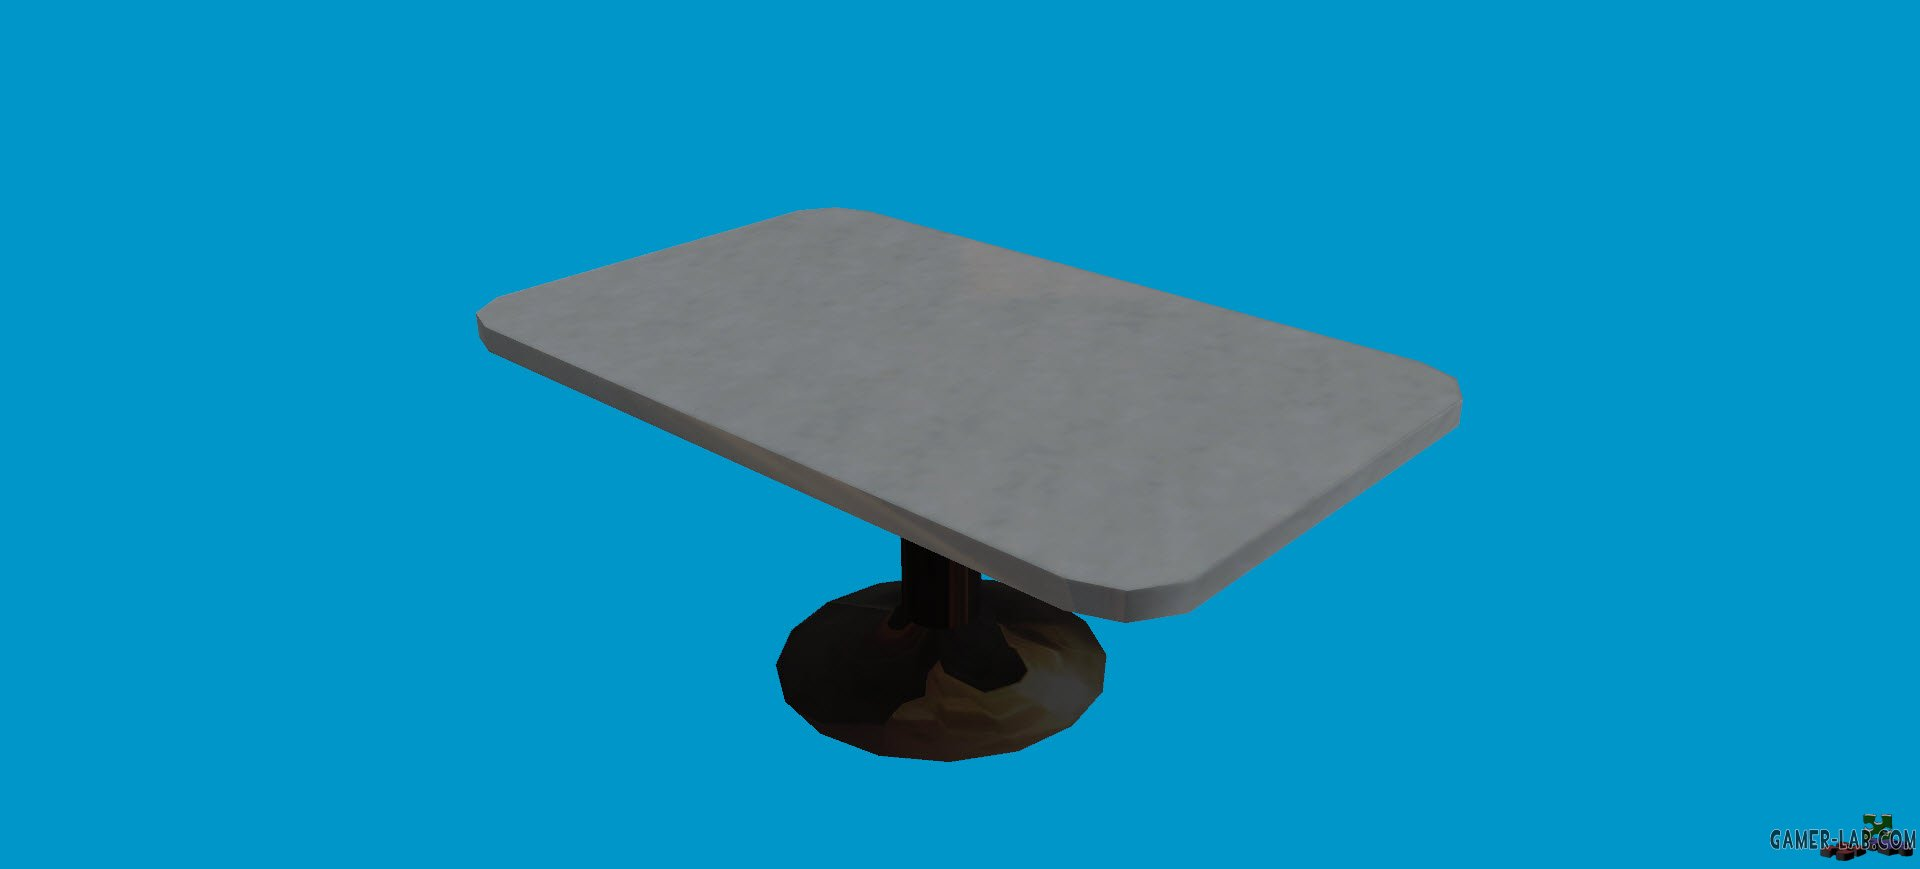 prop_booth_table